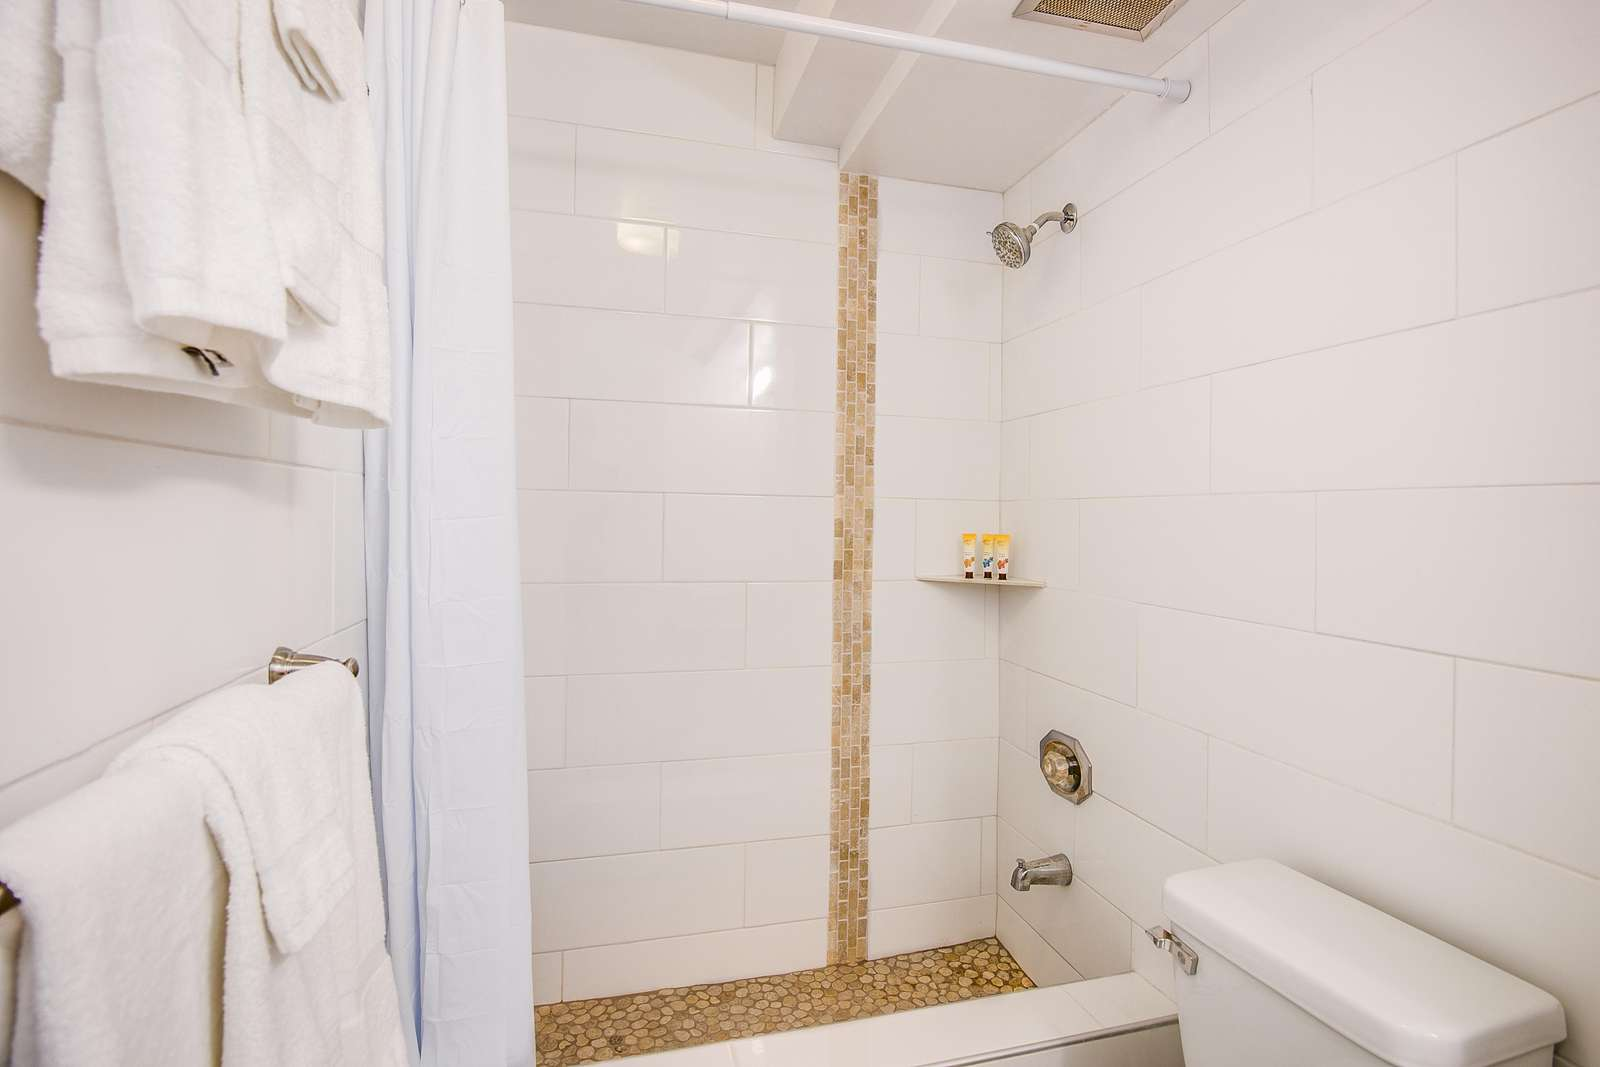 Shower / Tub combo - Perfect for after the beach, but please leave the sand at the beach :)